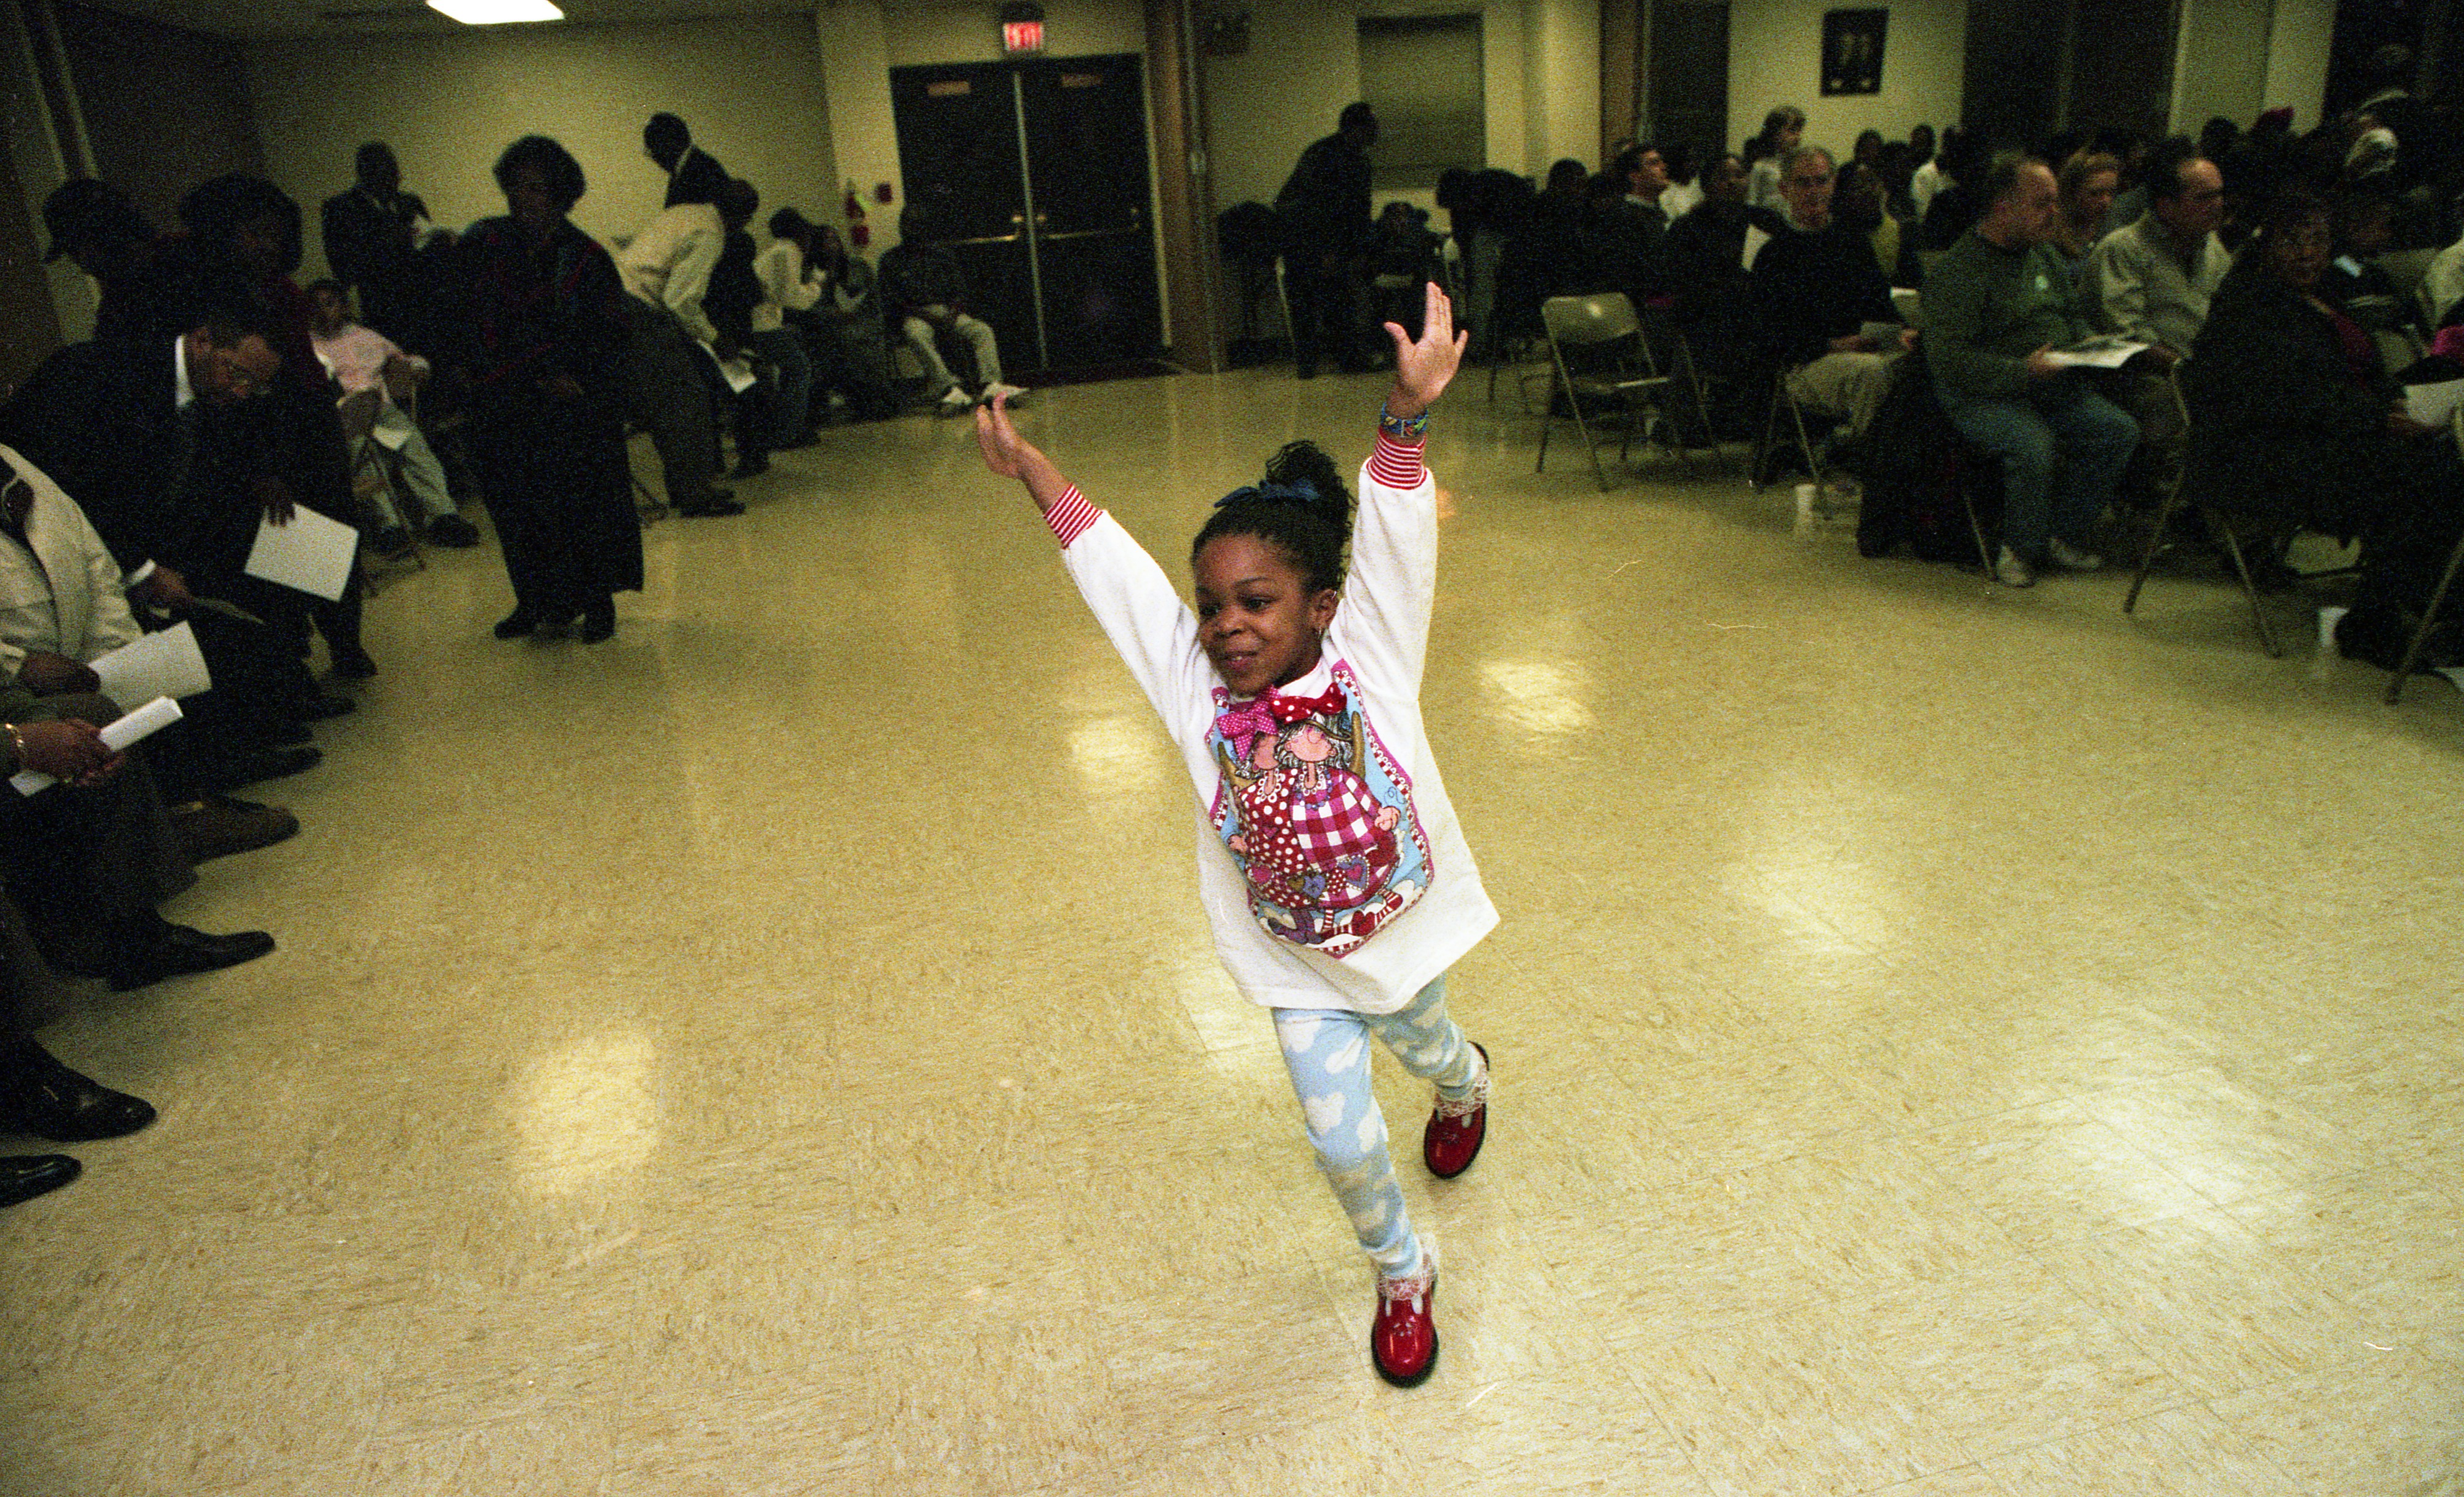 Children Dance at the Second Baptist Church Annual Memorial To Honor Dr. Martin Luther King Jr., January 2000 image